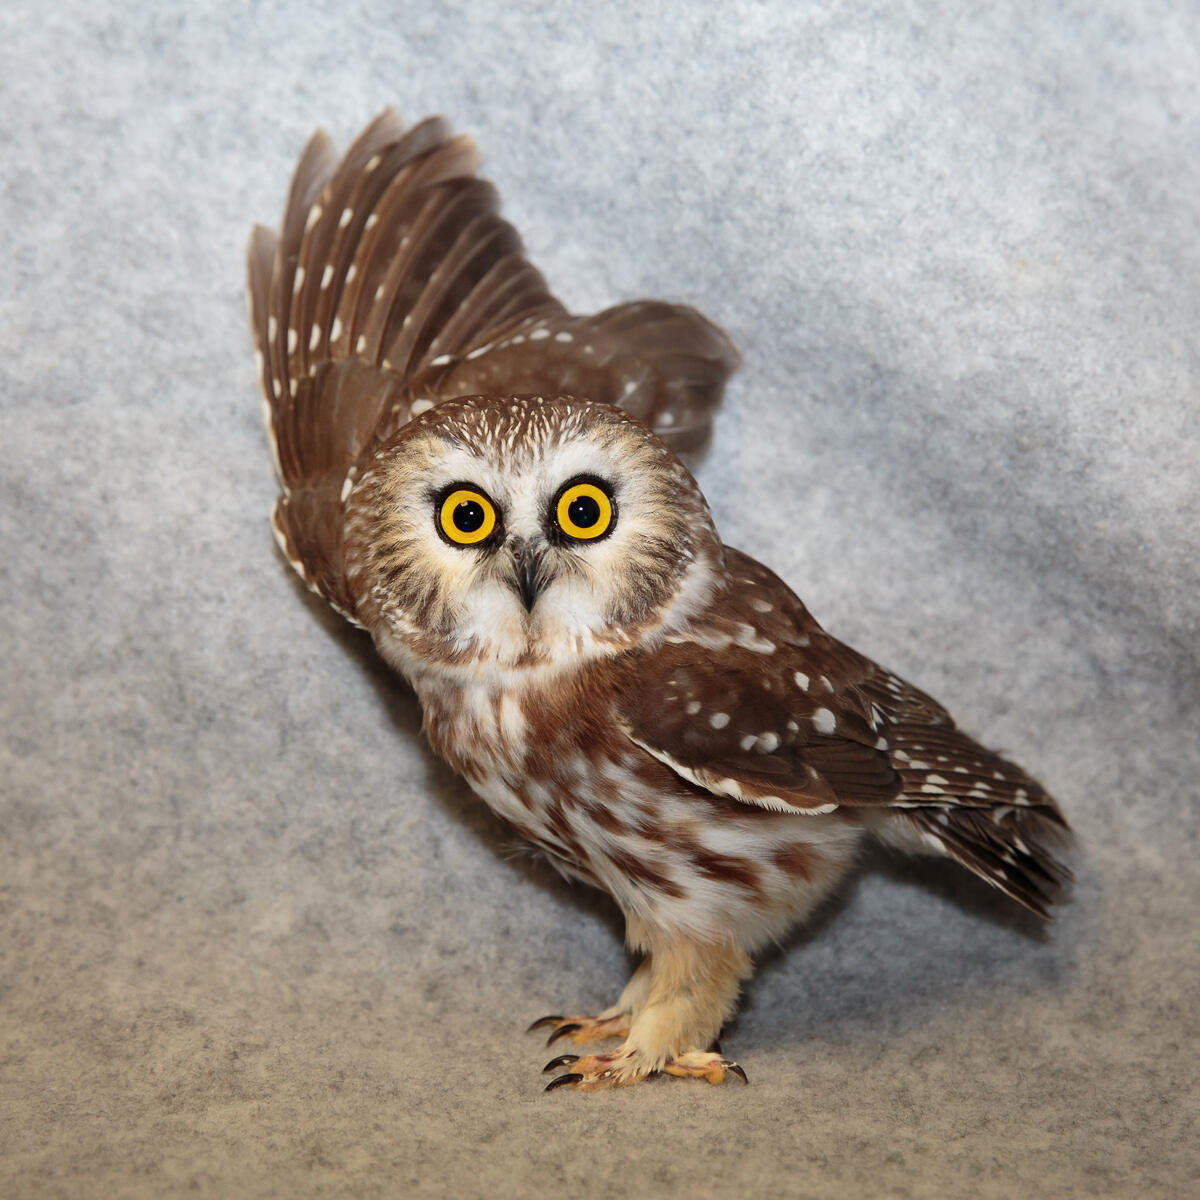 This Northern Saw-whet Owl struck a building on 57th street, and suffered a concussion. It was taken to the Wild Bird Fund in New York City, and later returned to the wild. Charles Chessler Photography